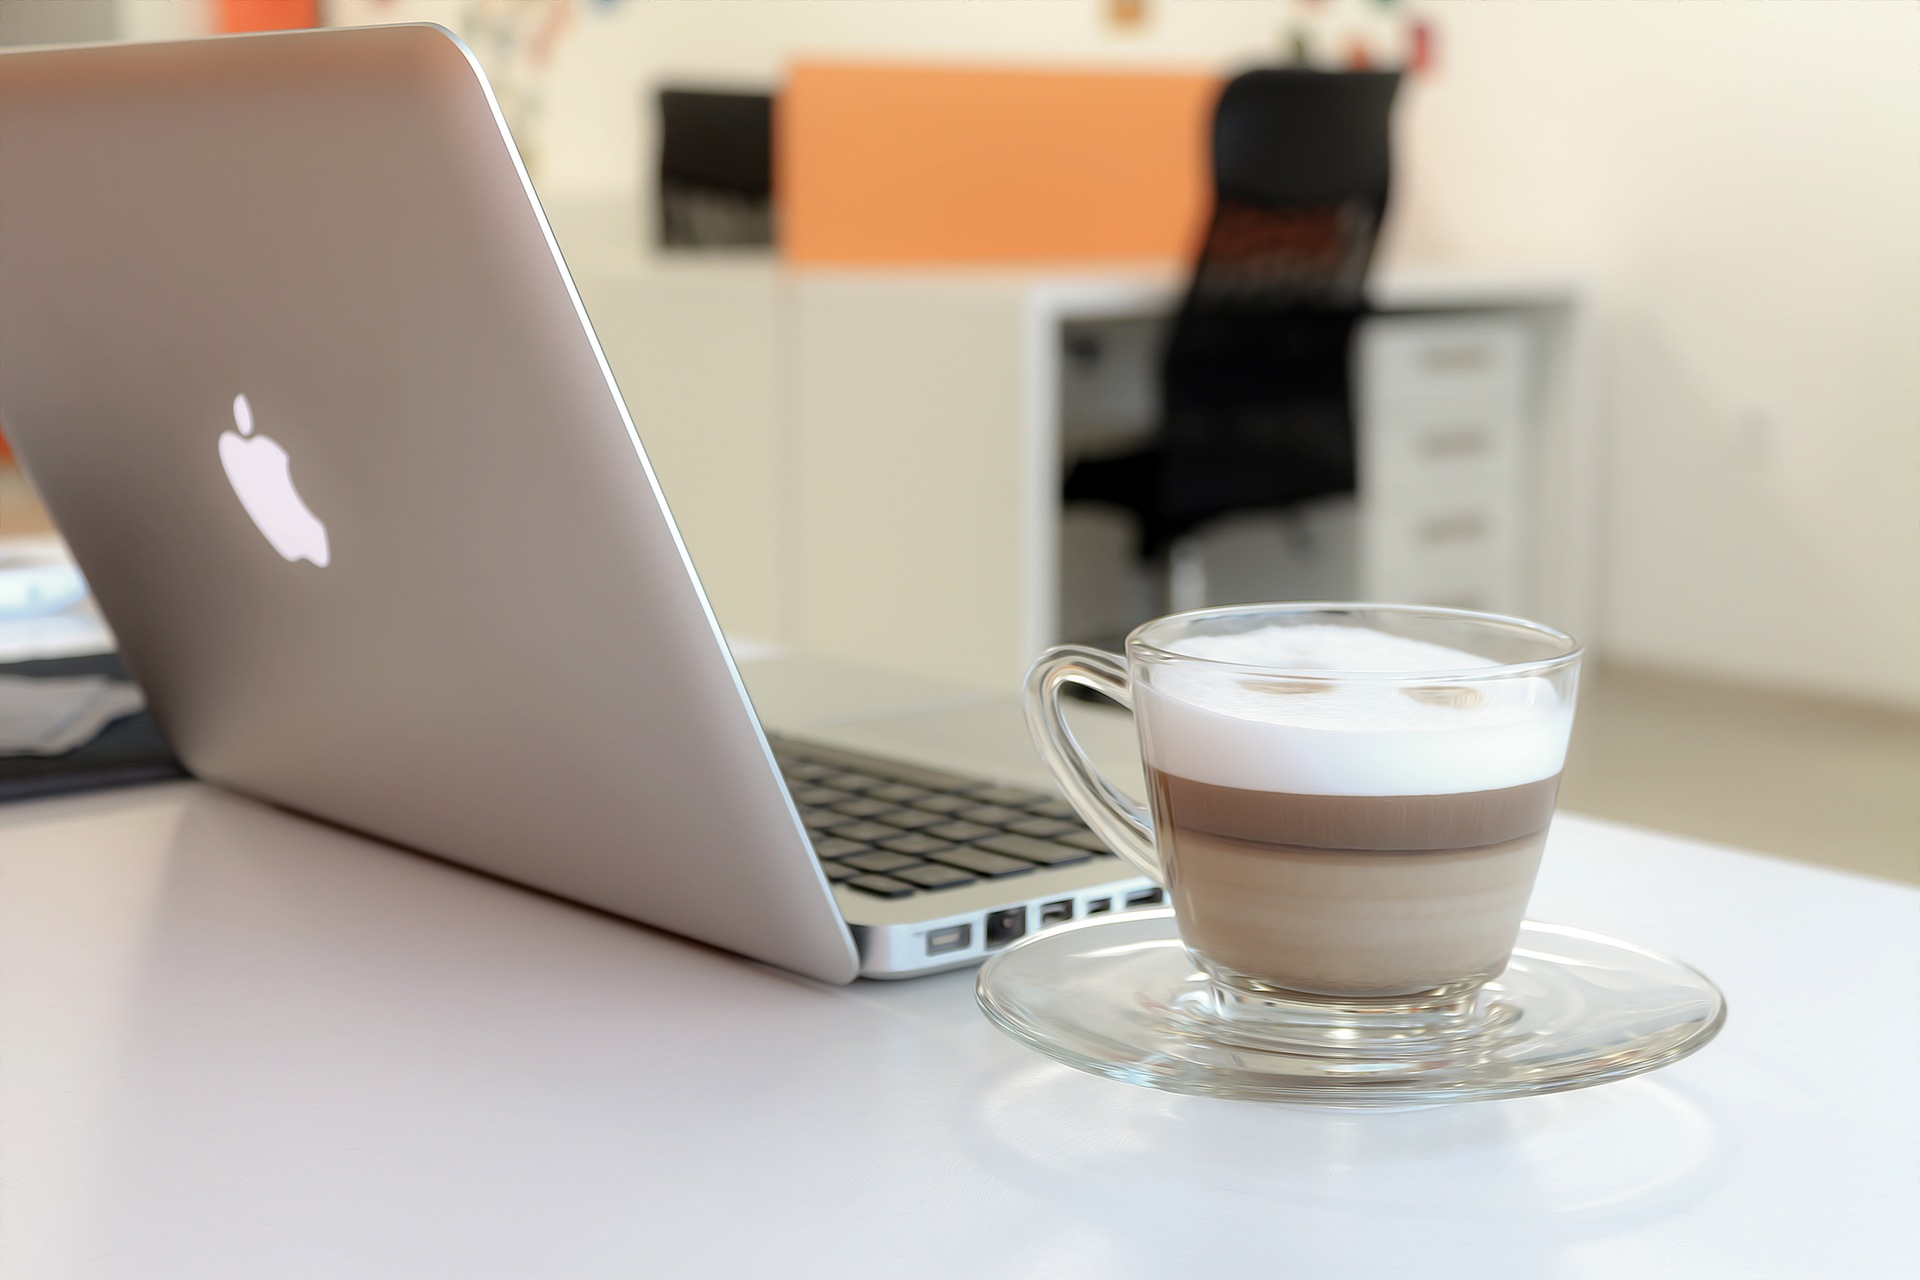 Macbook with Cappuccino